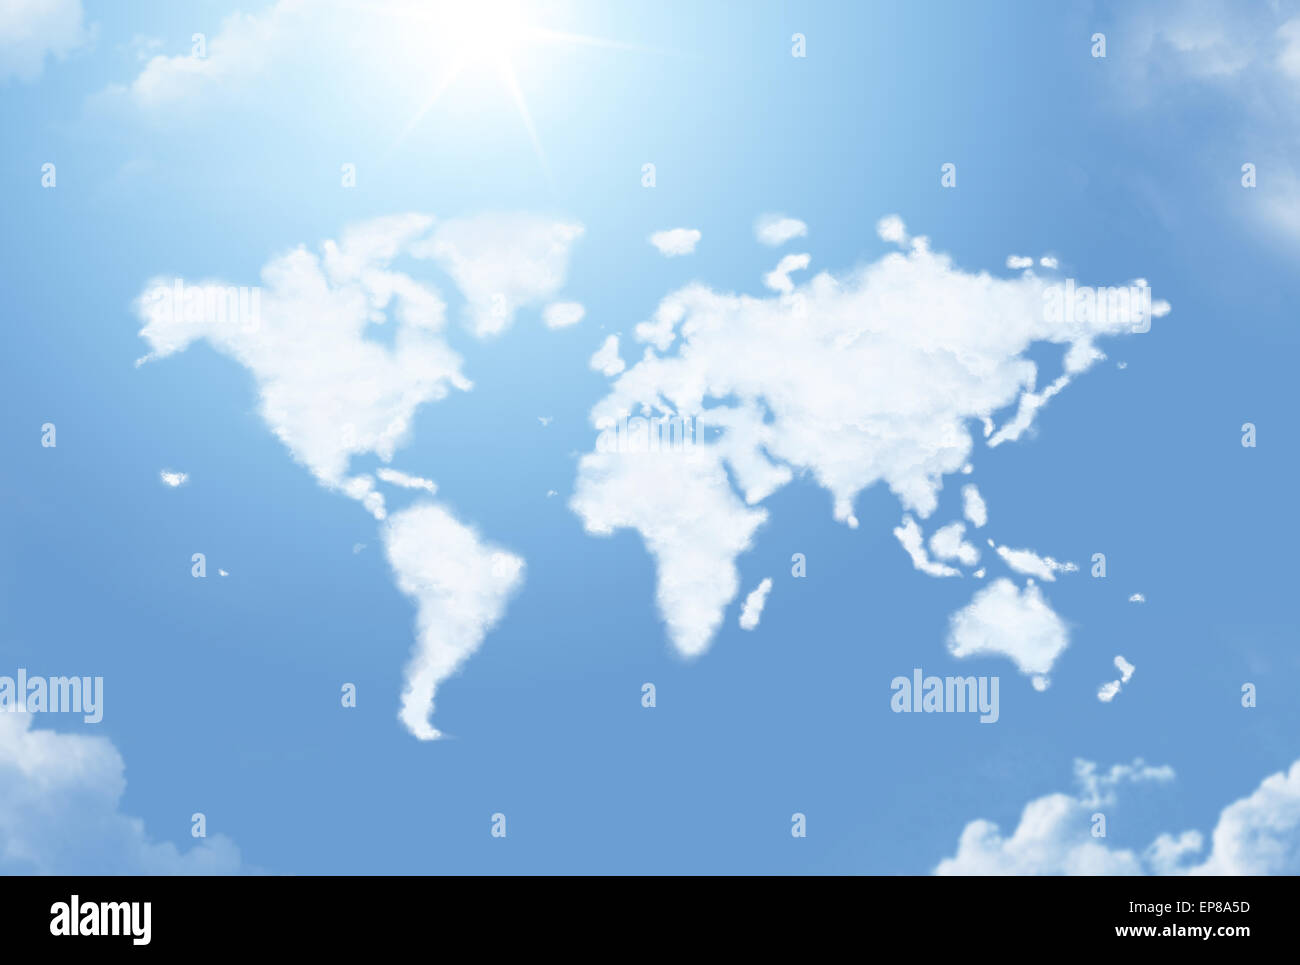 Fluffy cloud in the shape of the world map - Stock Image